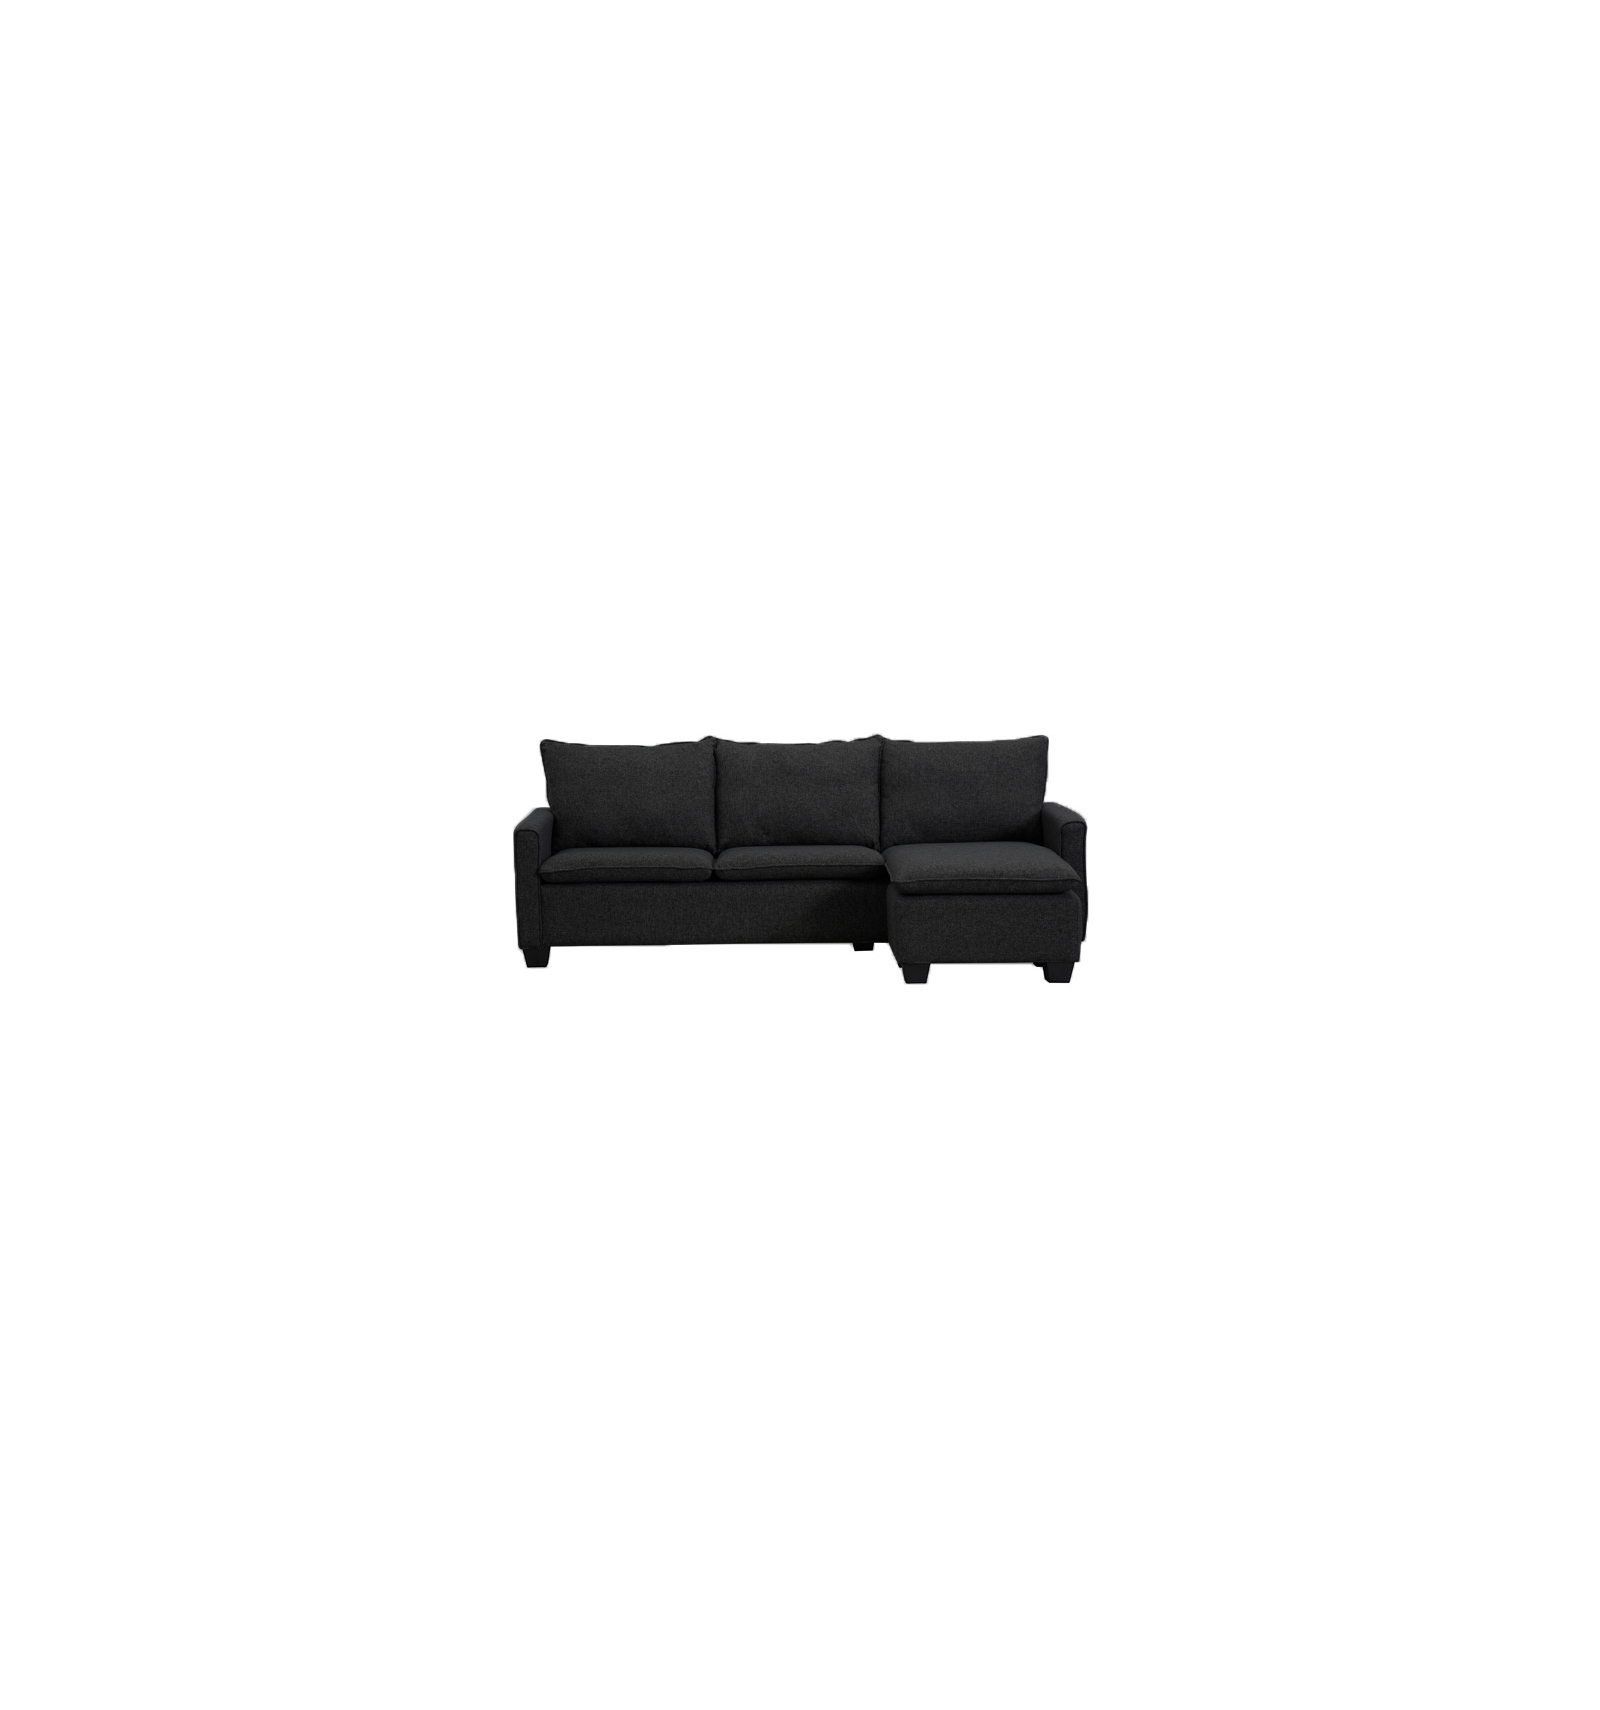 sofa mit chaise longue. Black Bedroom Furniture Sets. Home Design Ideas